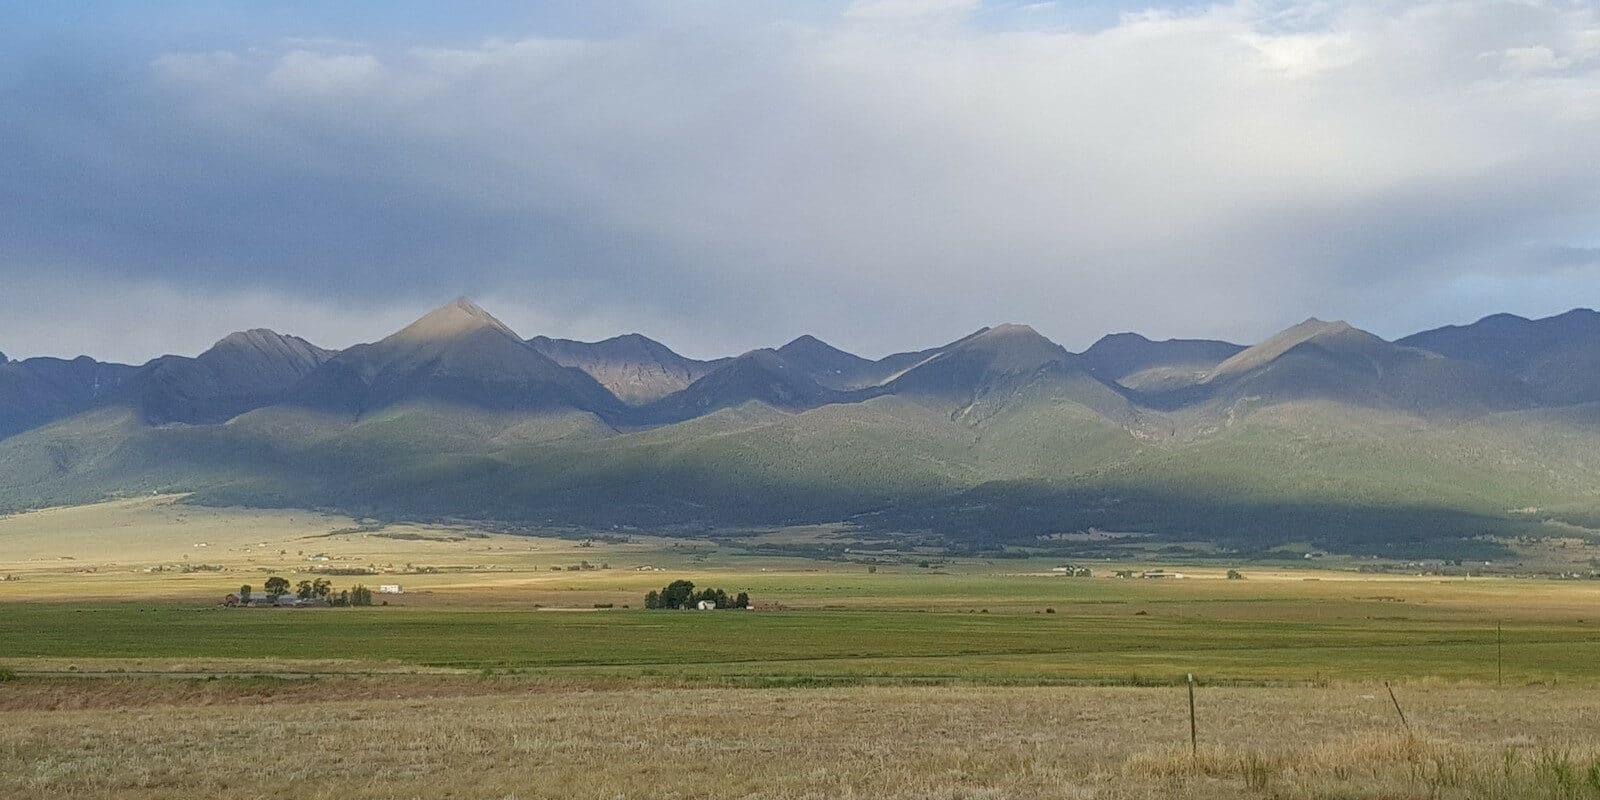 Image of the mountains in the Bluff and Summit Park in Westcliffe, Colorado